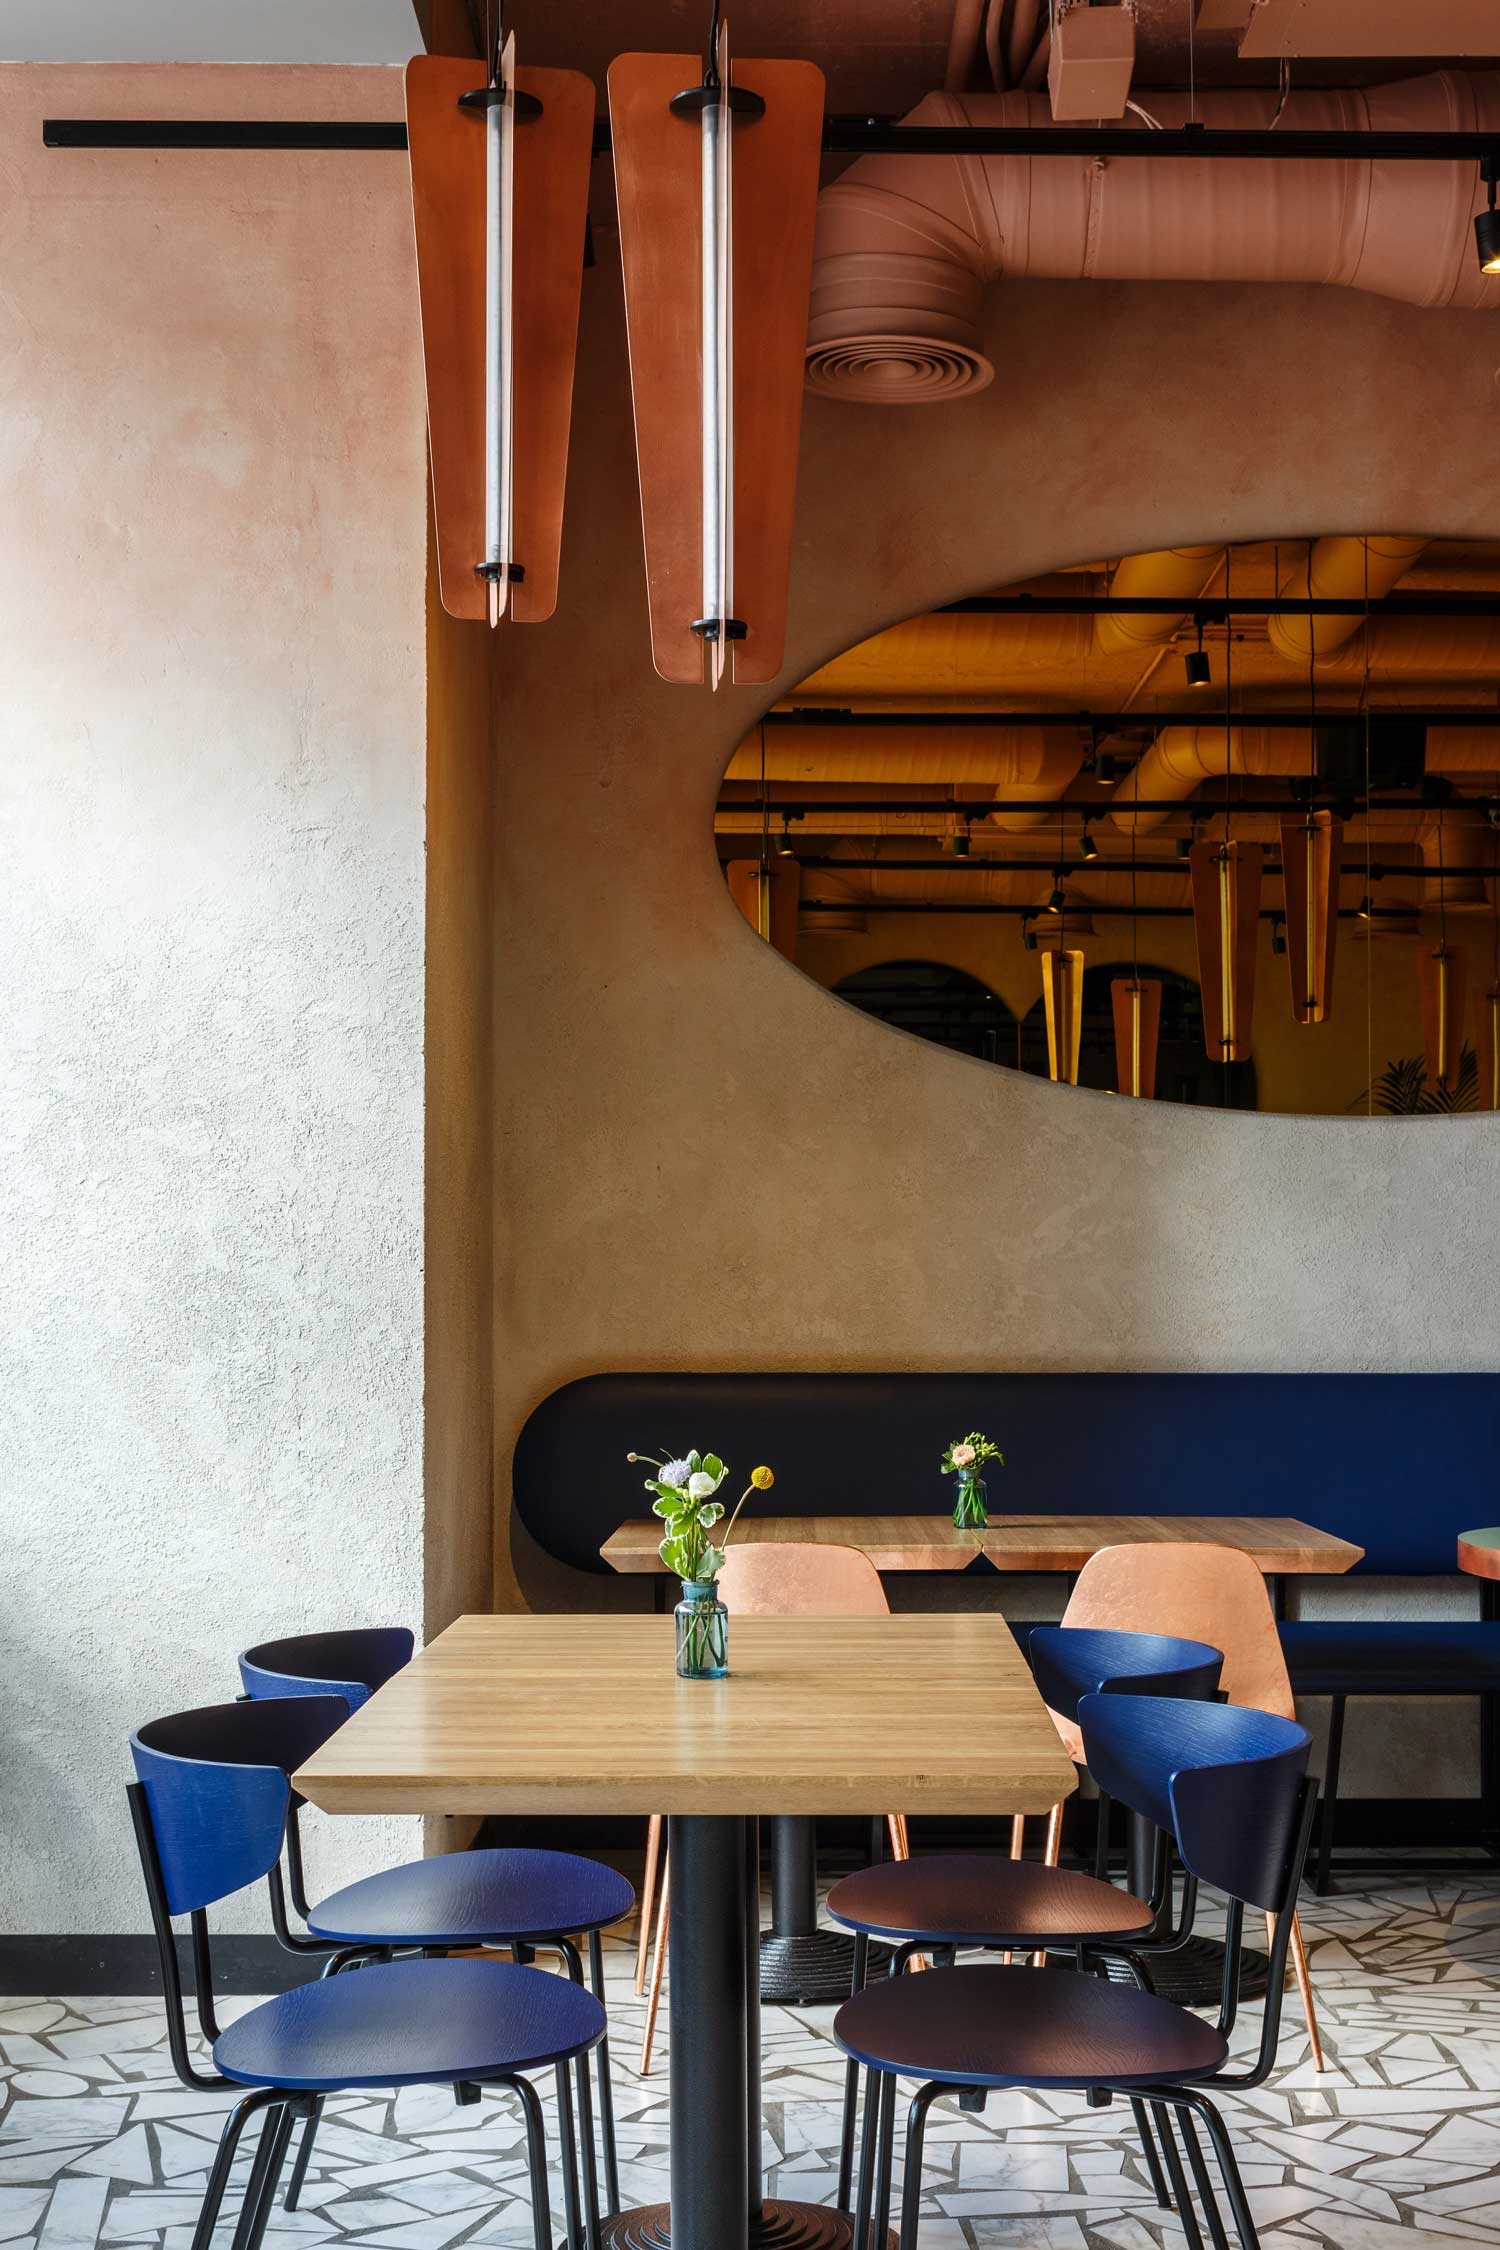 Cookers-Restaurant-in-Moscow-by-VETER-DESIGN-Yellowtrace-04.jpg